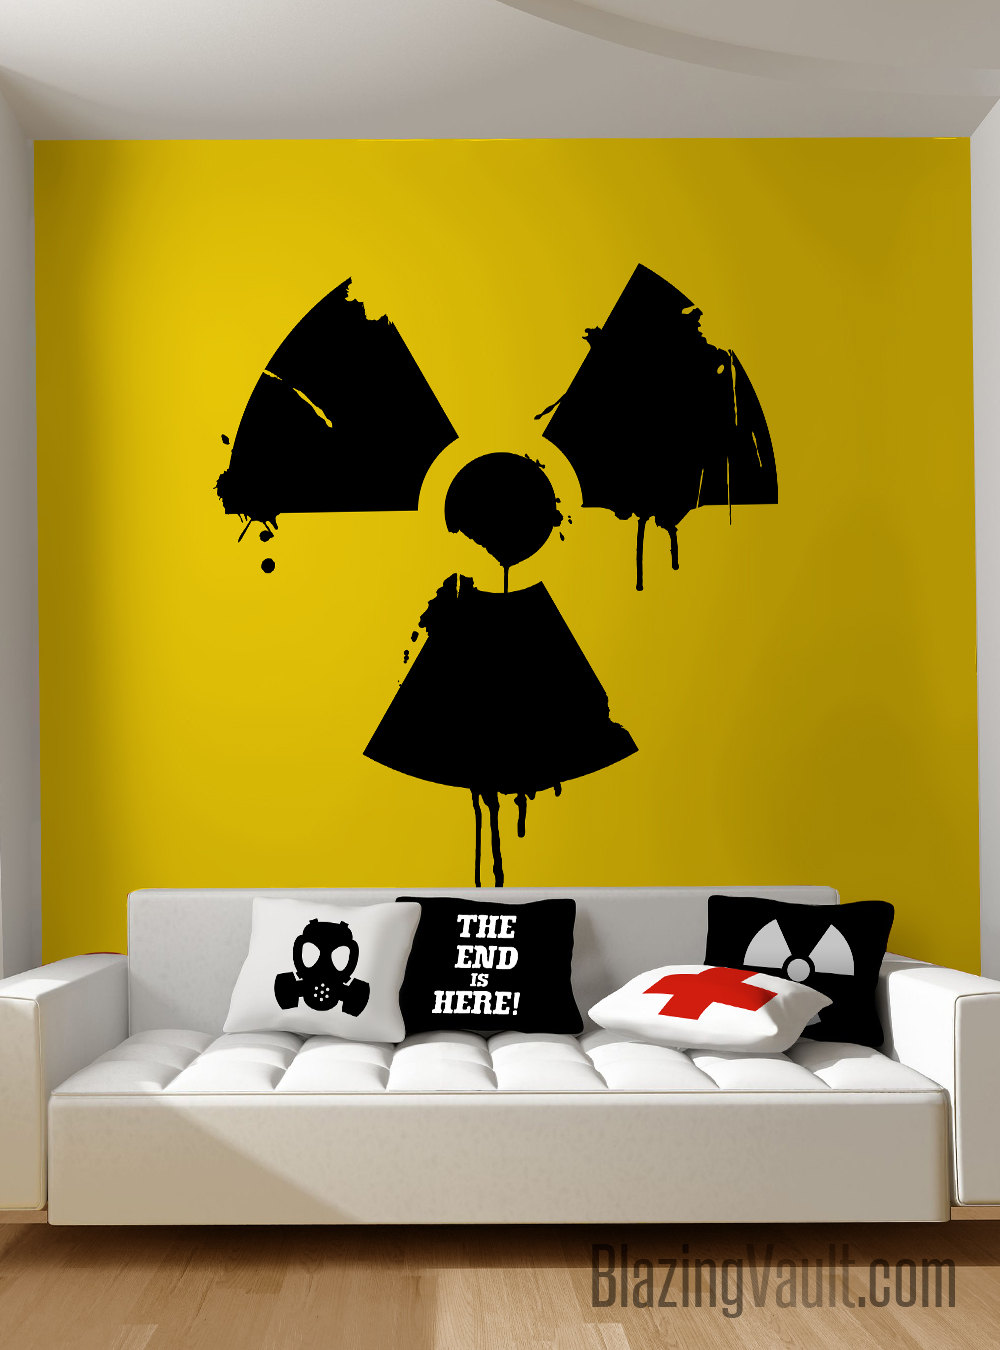 Awesome Gamer Wall Decor Composition - The Wall Art Decorations ...